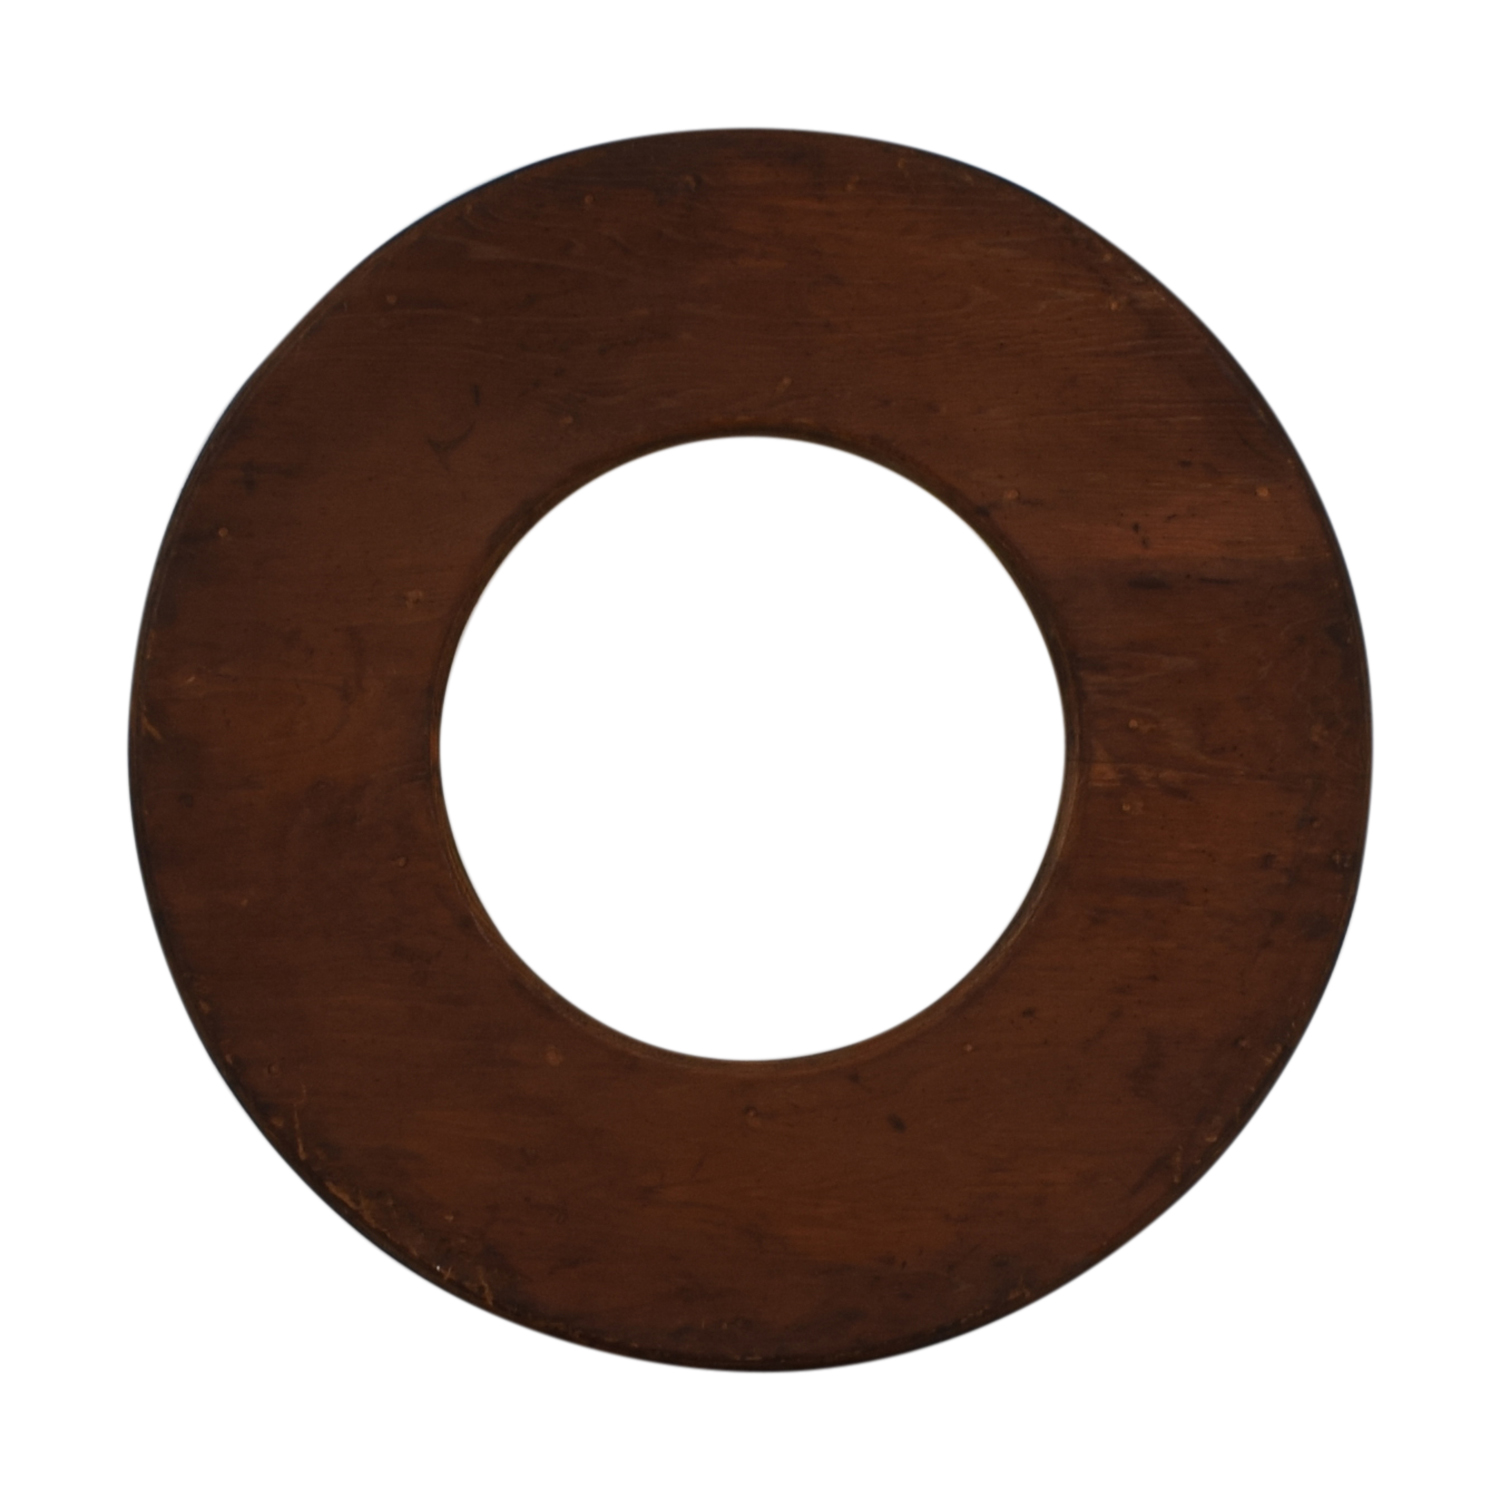 Wooden Circle Wall Hanging Decorative Accents